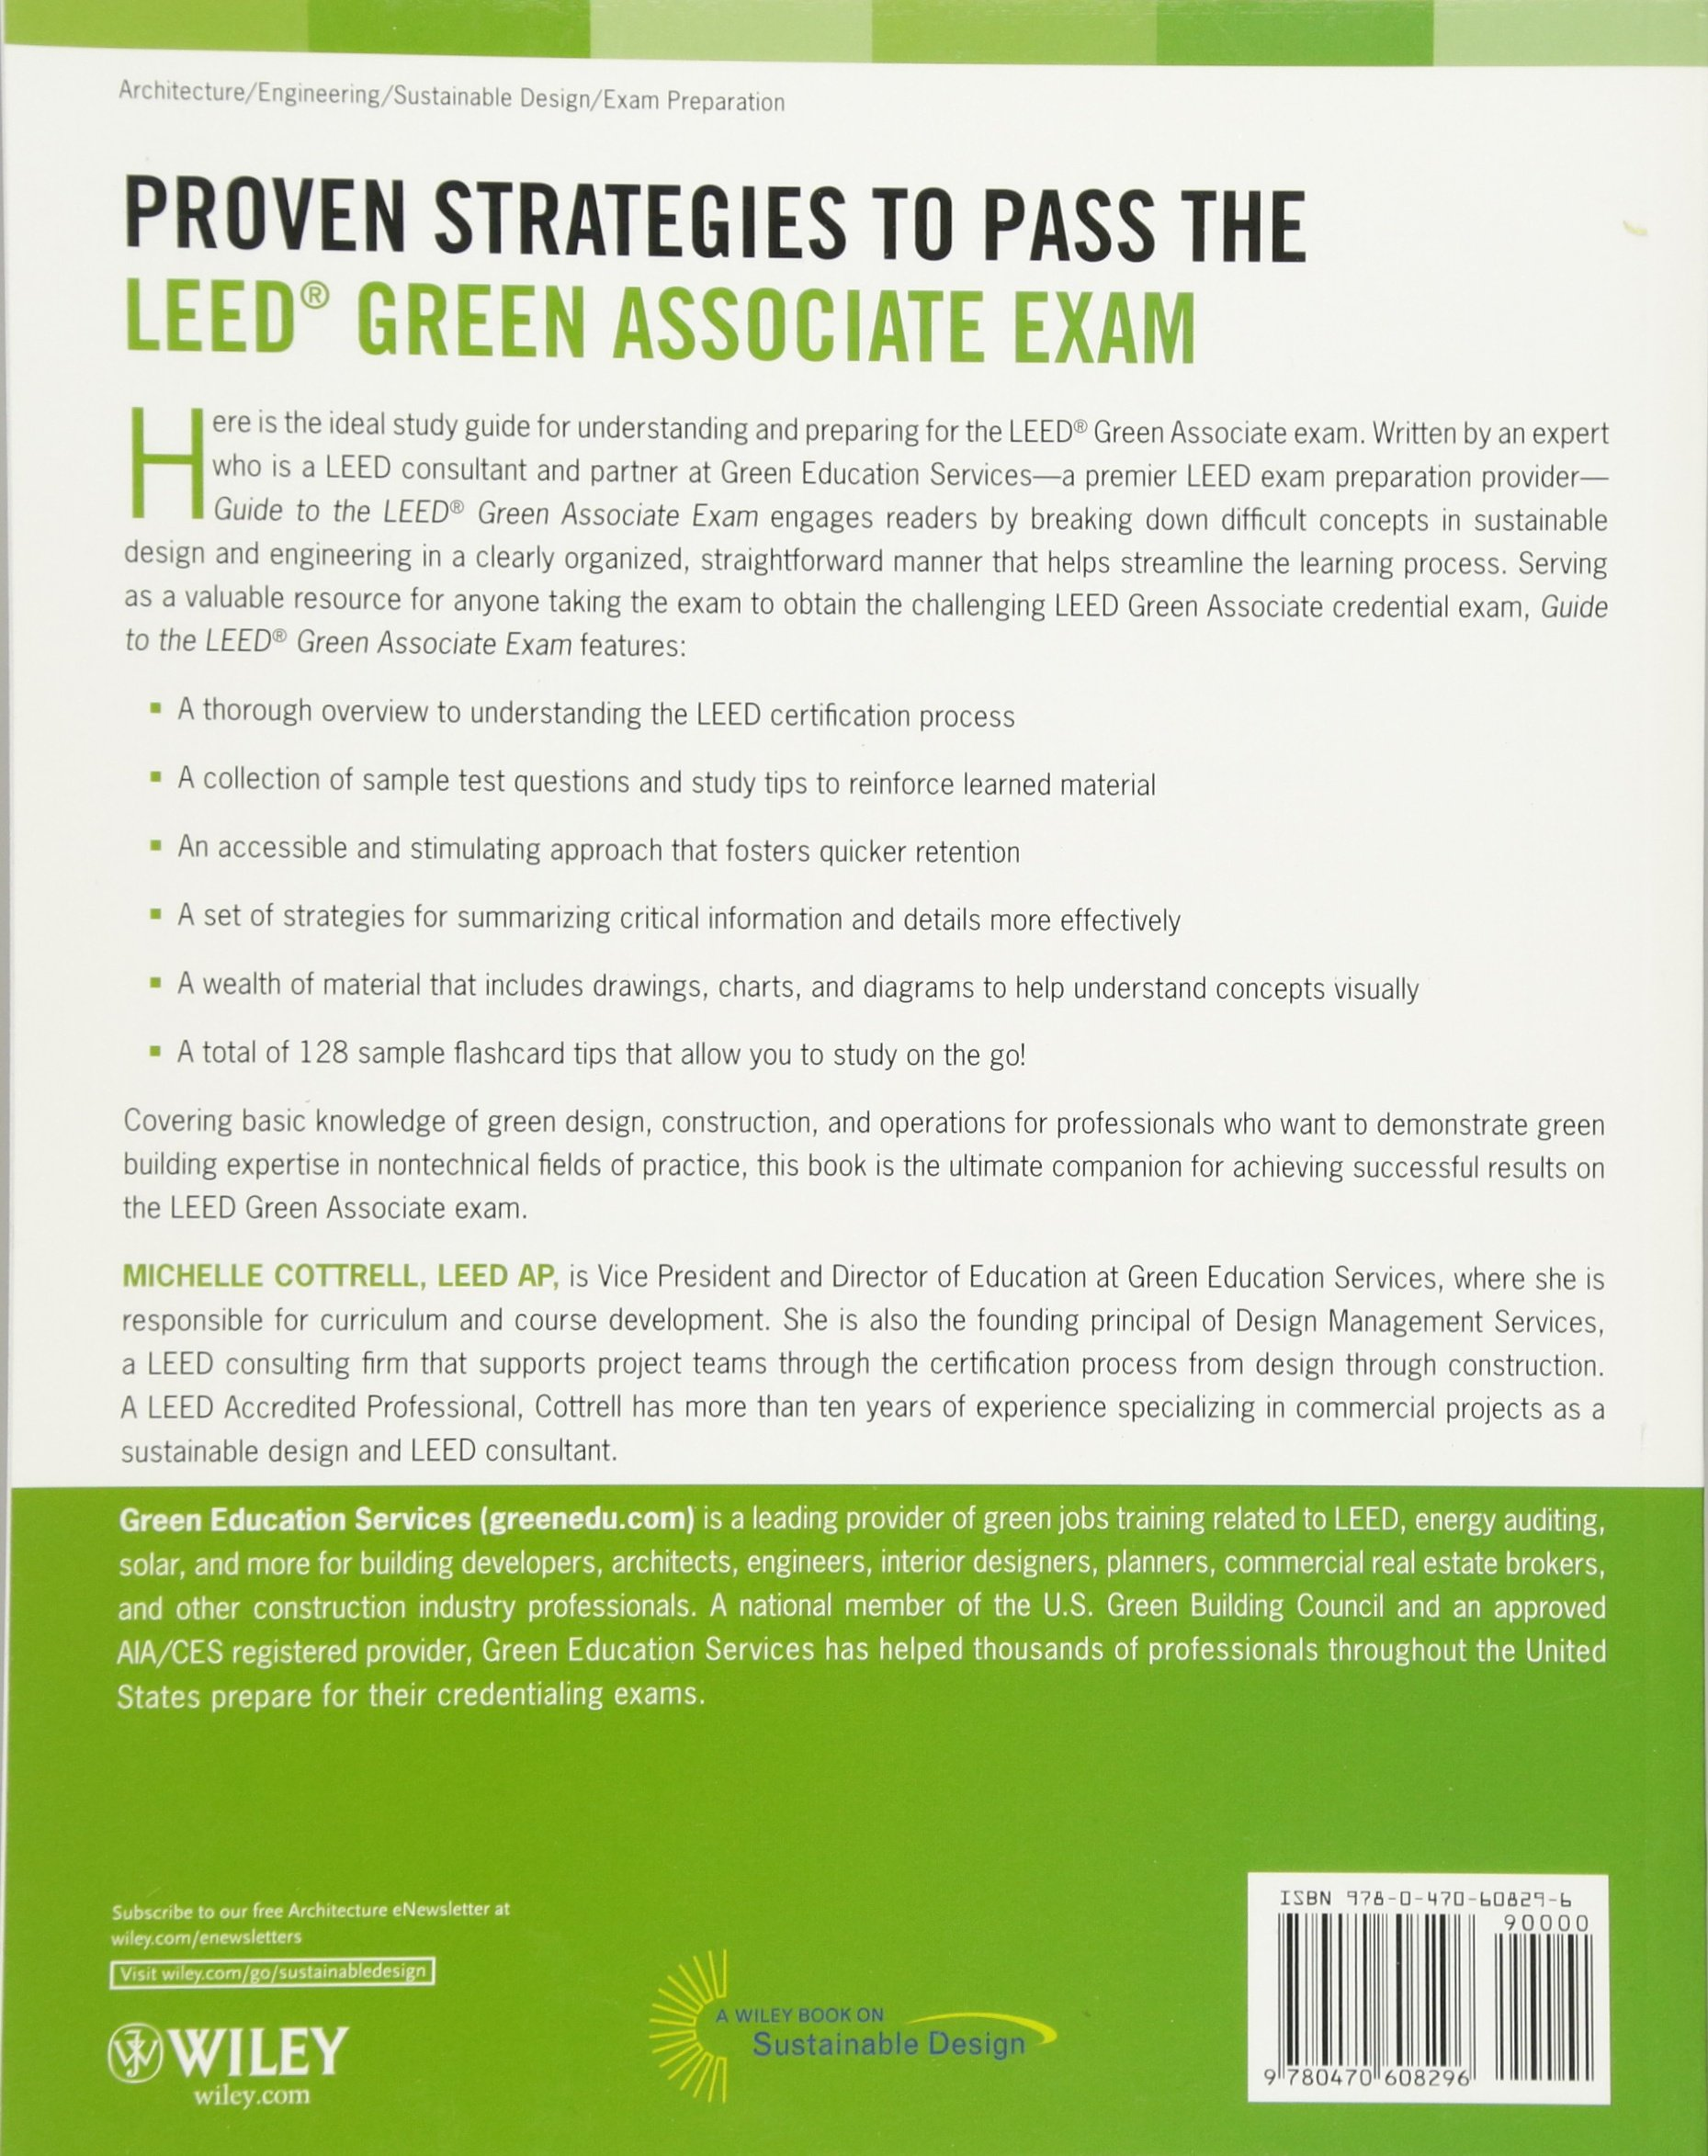 Guide to the leed green associate exam michelle cottrell guide to the leed green associate exam michelle cottrell 9780470608296 books amazon xflitez Choice Image